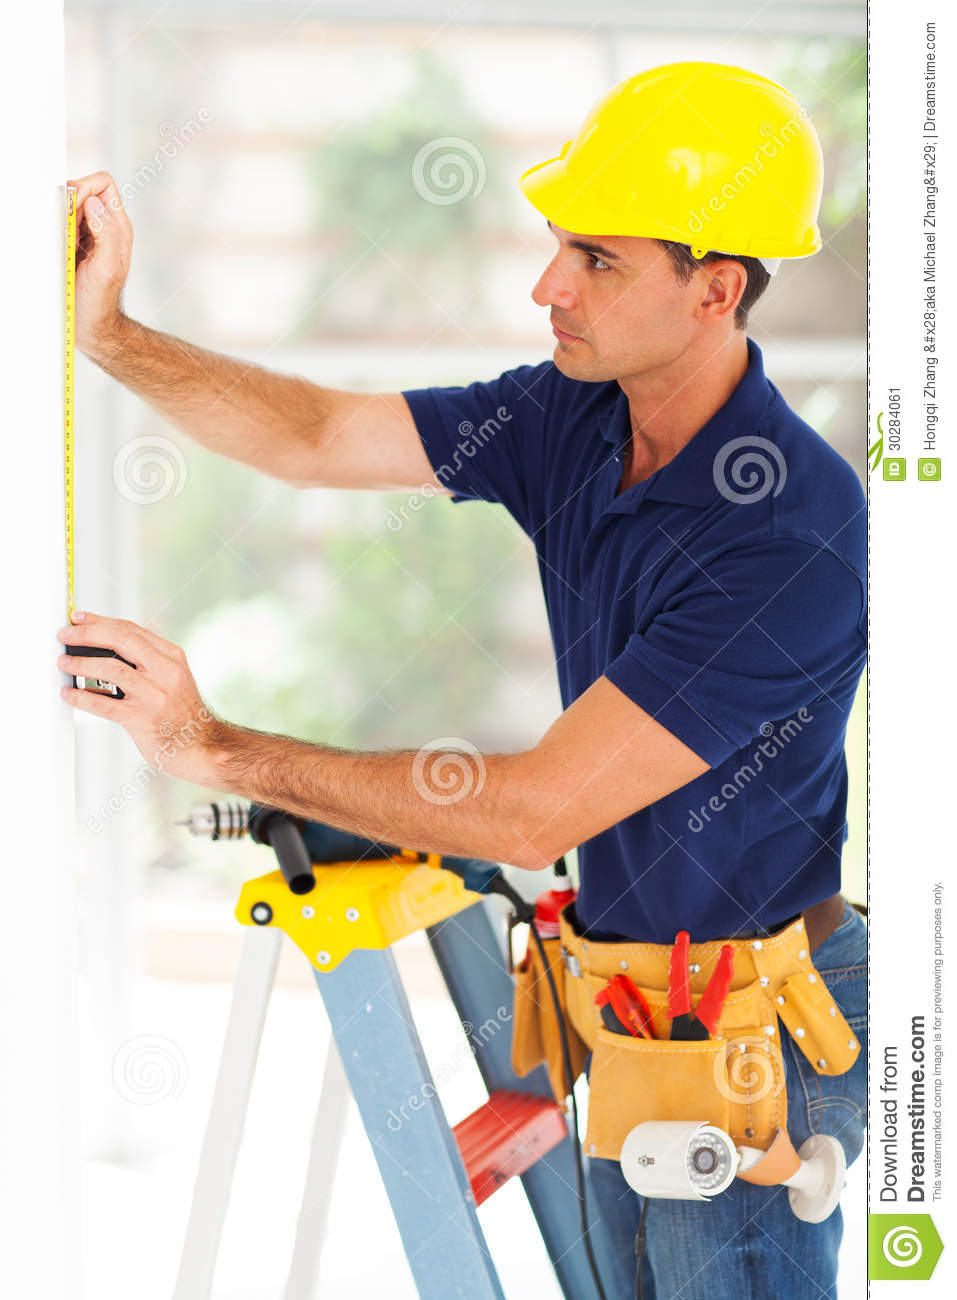 security system installer stock image image  security system installer